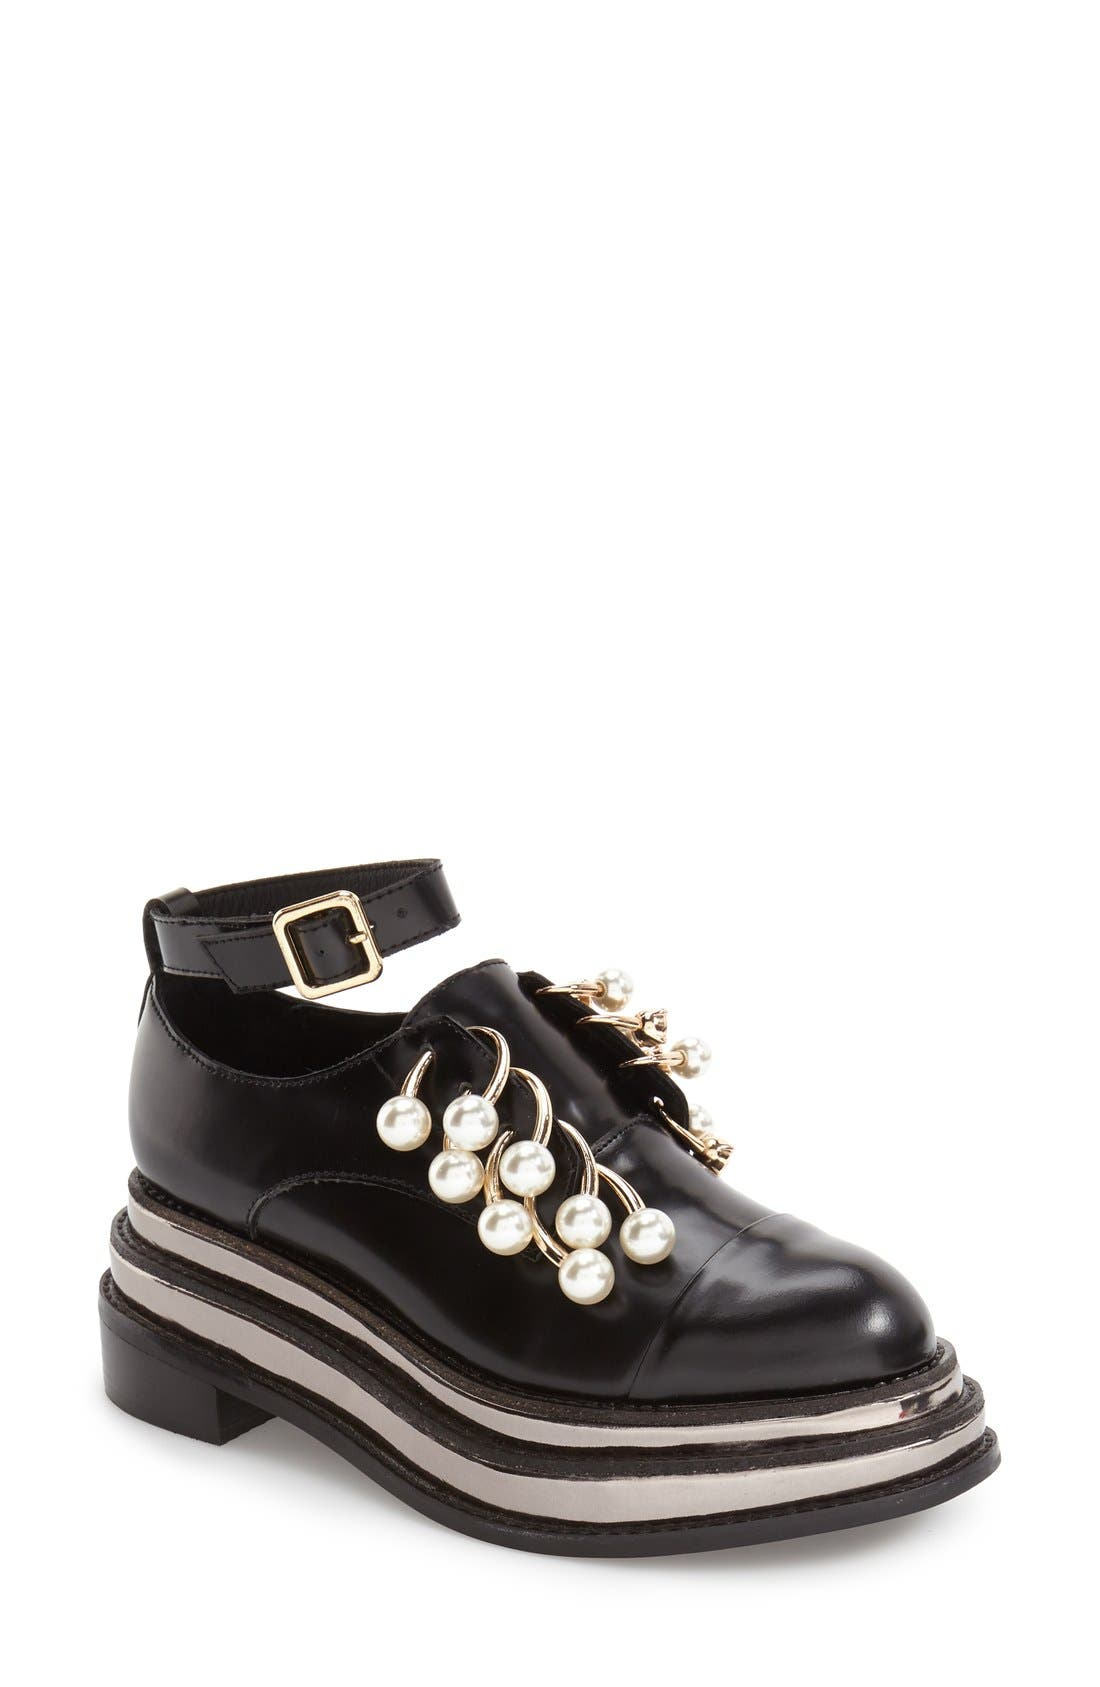 Main Image - Jeffrey Campbell 'Jagged' Crystal Embellished No-Lace Platform Oxford (Women)